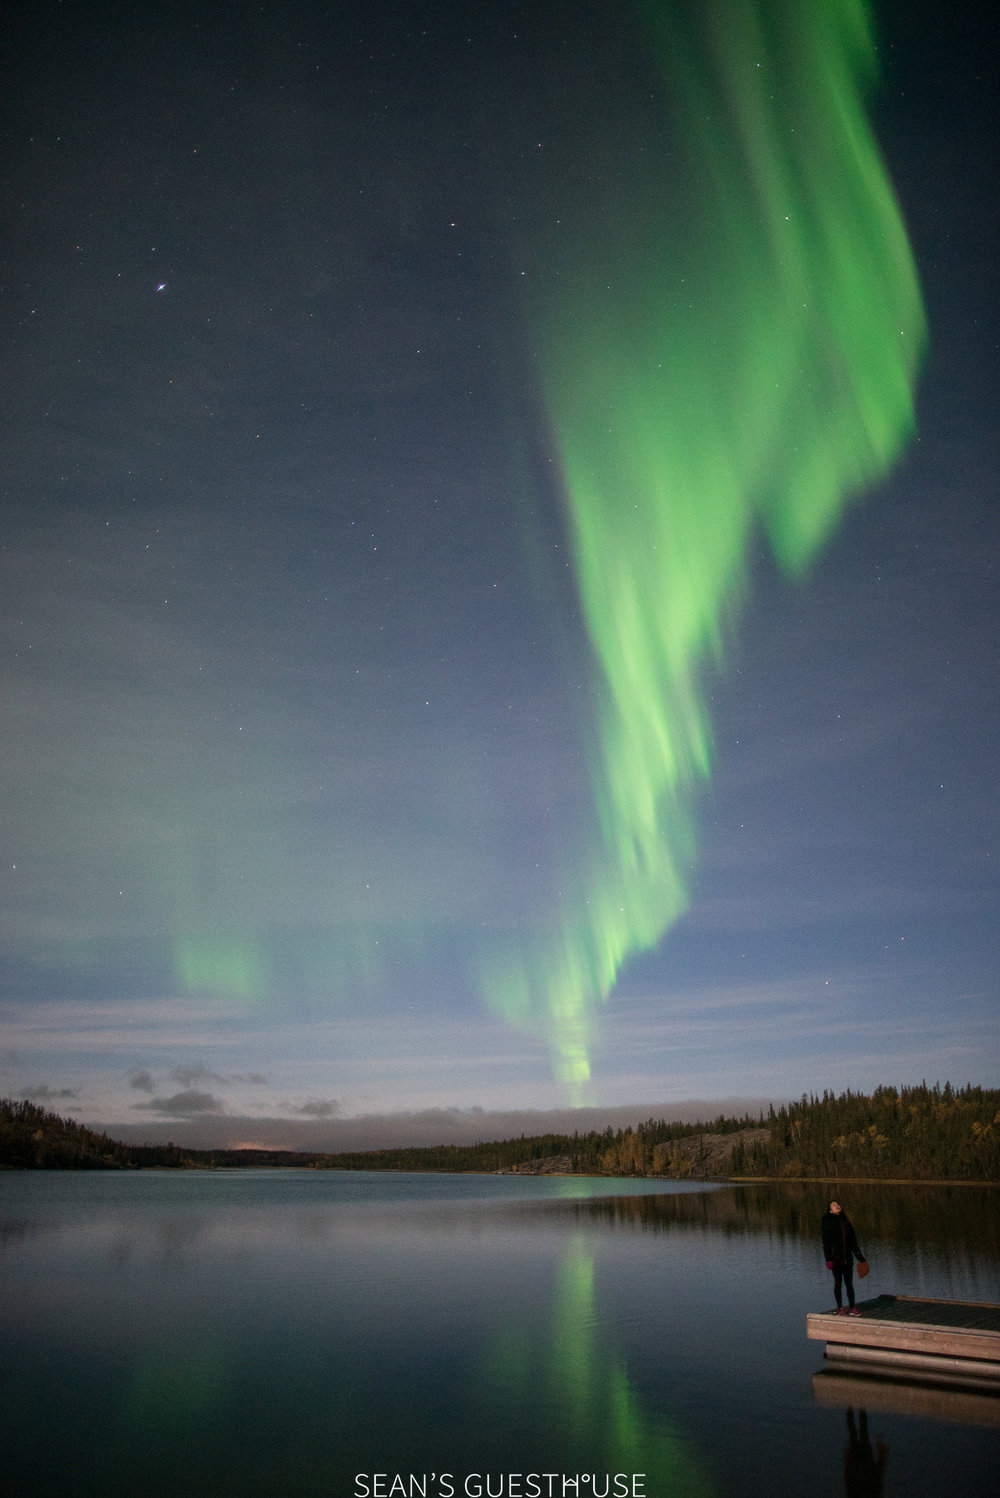 Sean's Guesthouse - Yellowknife Northern Lights Viewing - 5.jpg